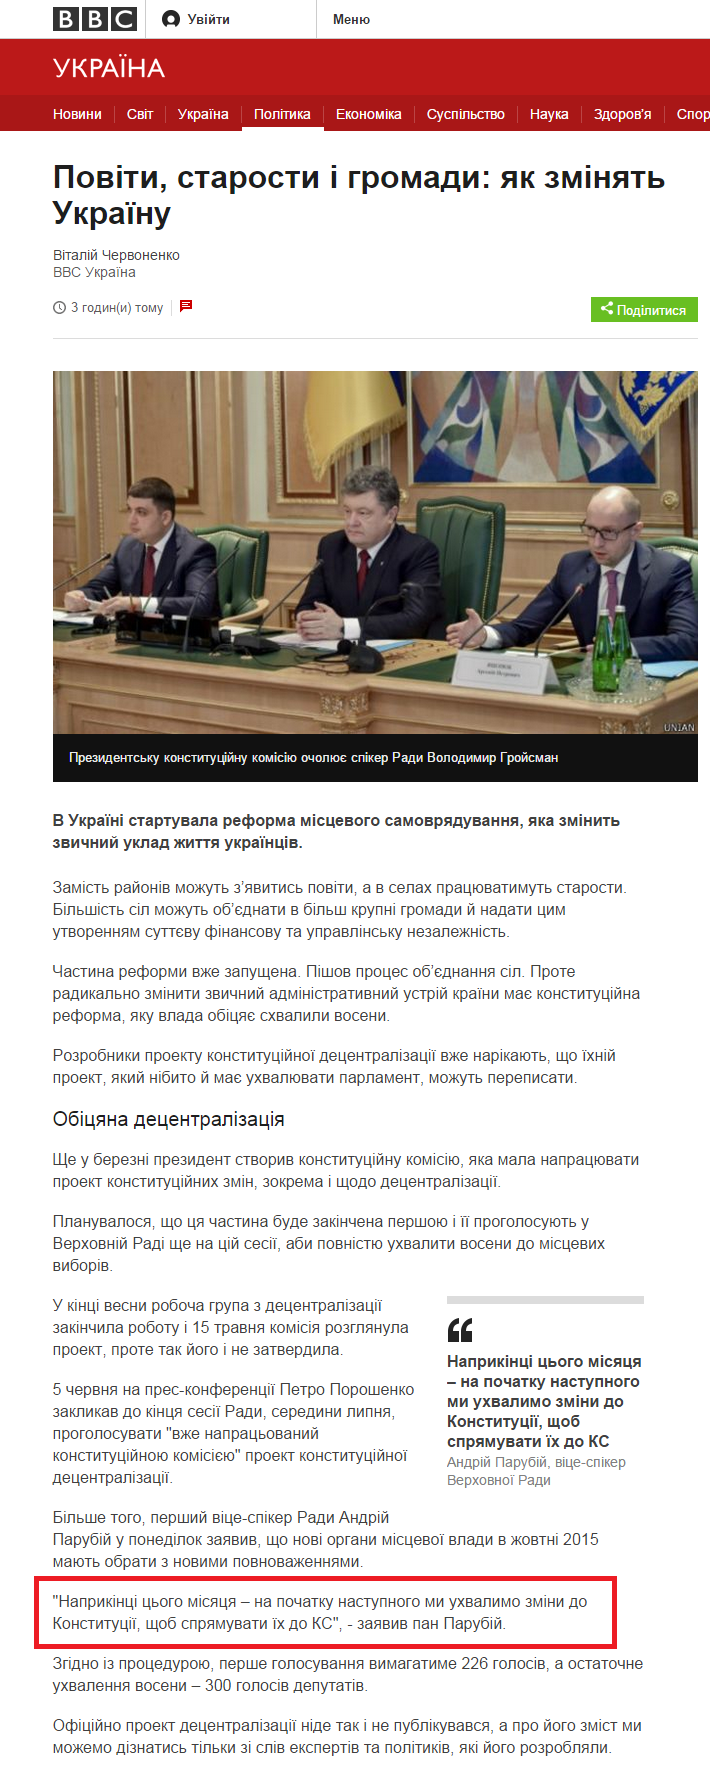 http://www.bbc.com/ukrainian/politics/2015/06/150609_new_local_government_system_vc